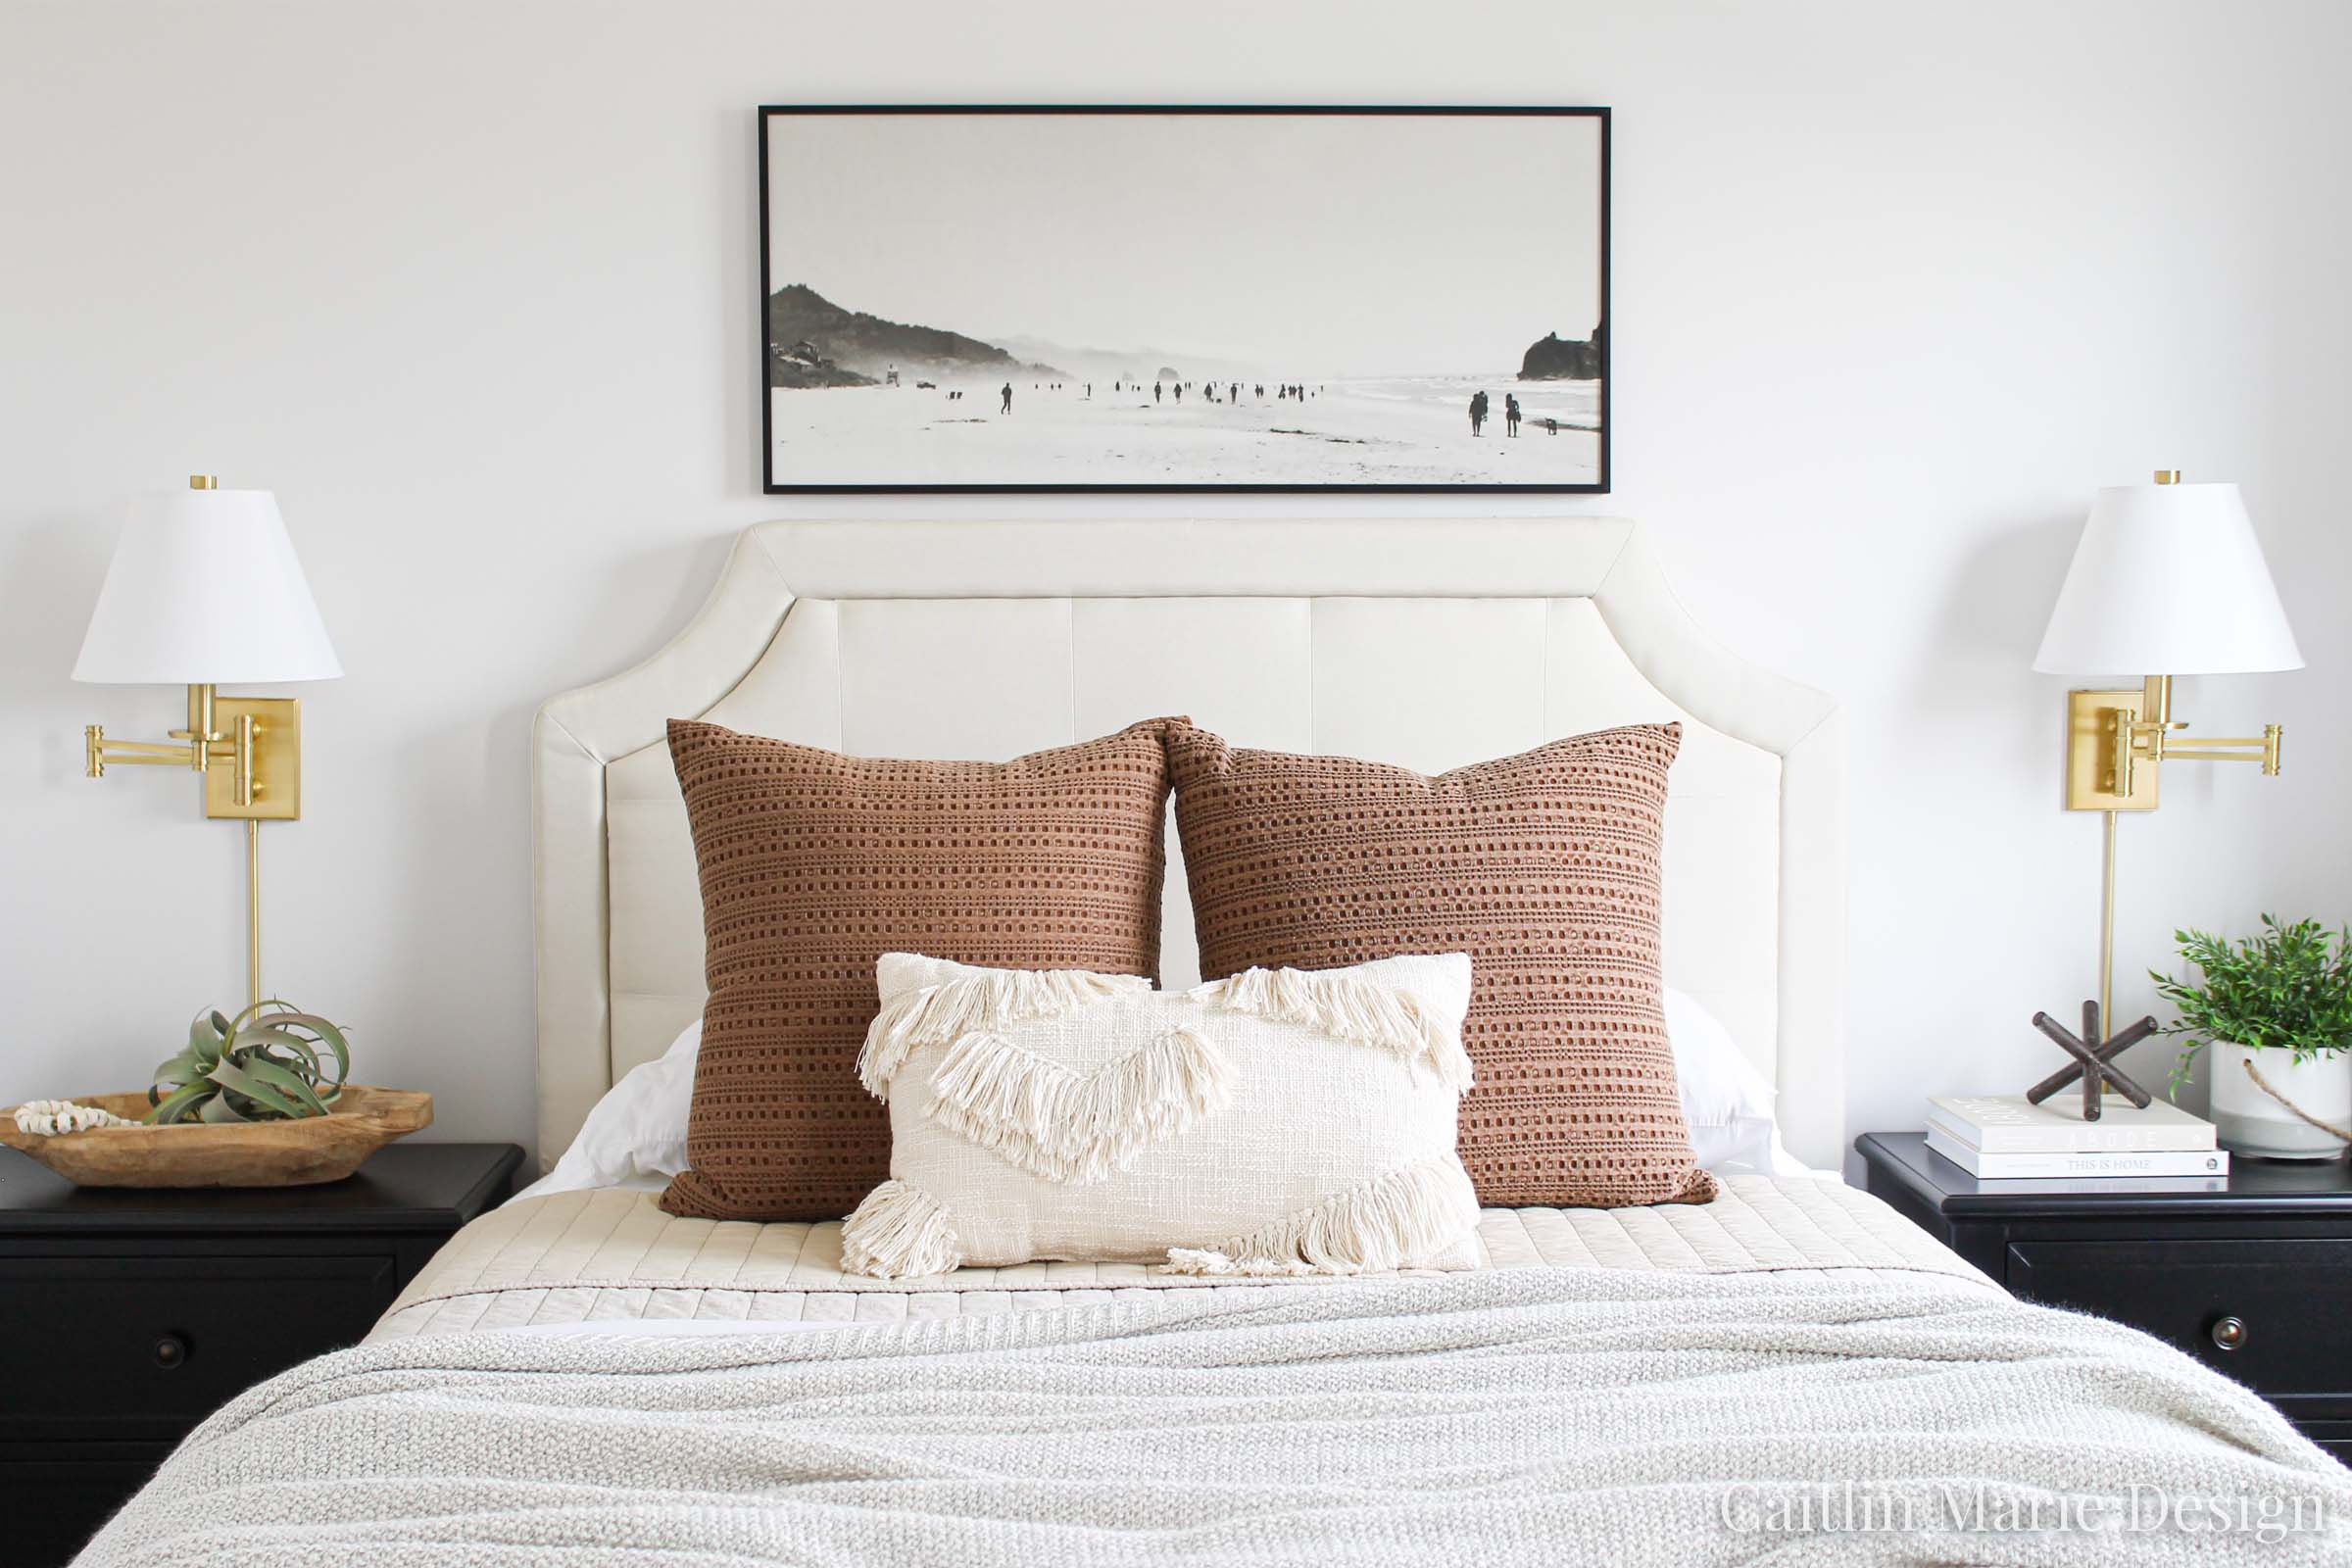 One Room Challenge Fall 2019 Reveal   modern traditional bedroom decor, modern boho, landscape painting, brass sconces, textured bedding